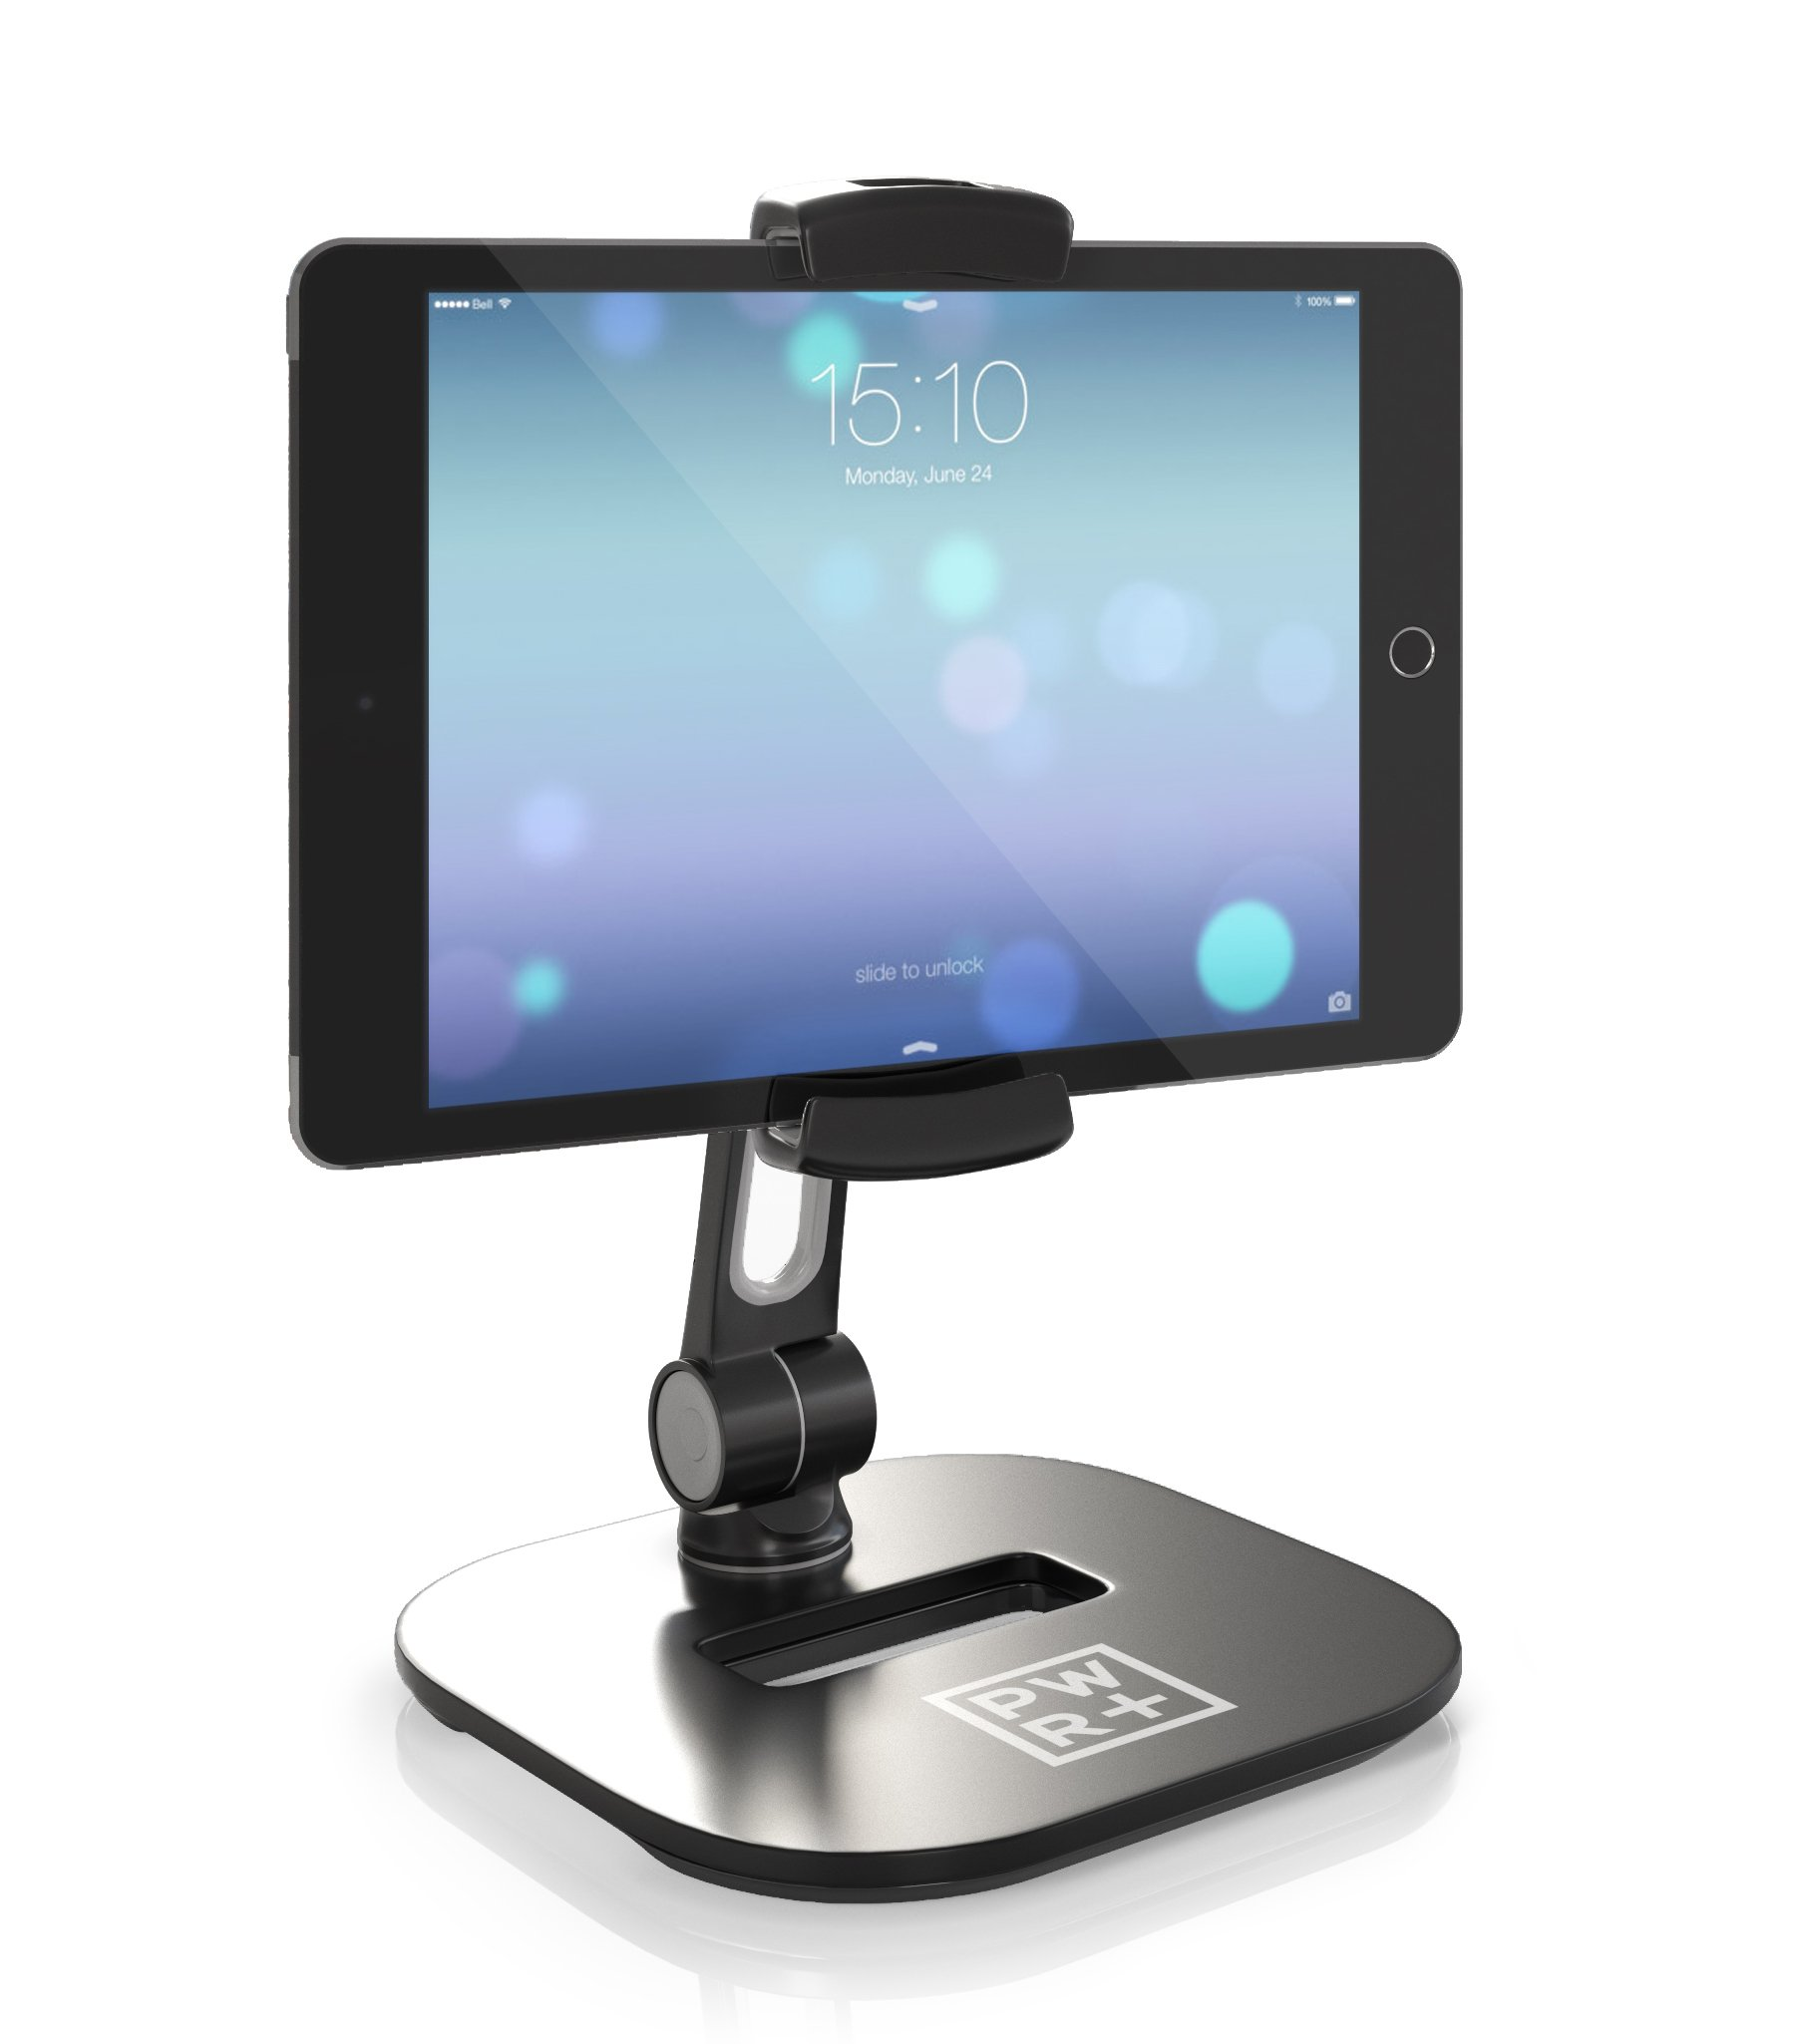 Tablet Stands and Holders Adjustable: Pwr Stylish Tablet Cell Phone Holder 360 degree Swivel Angle Rotation for 4-11'' Tab Phone iPad Samsung Galaxy Perfect POS Kitchen Bedside Office Table Reception by PWR+